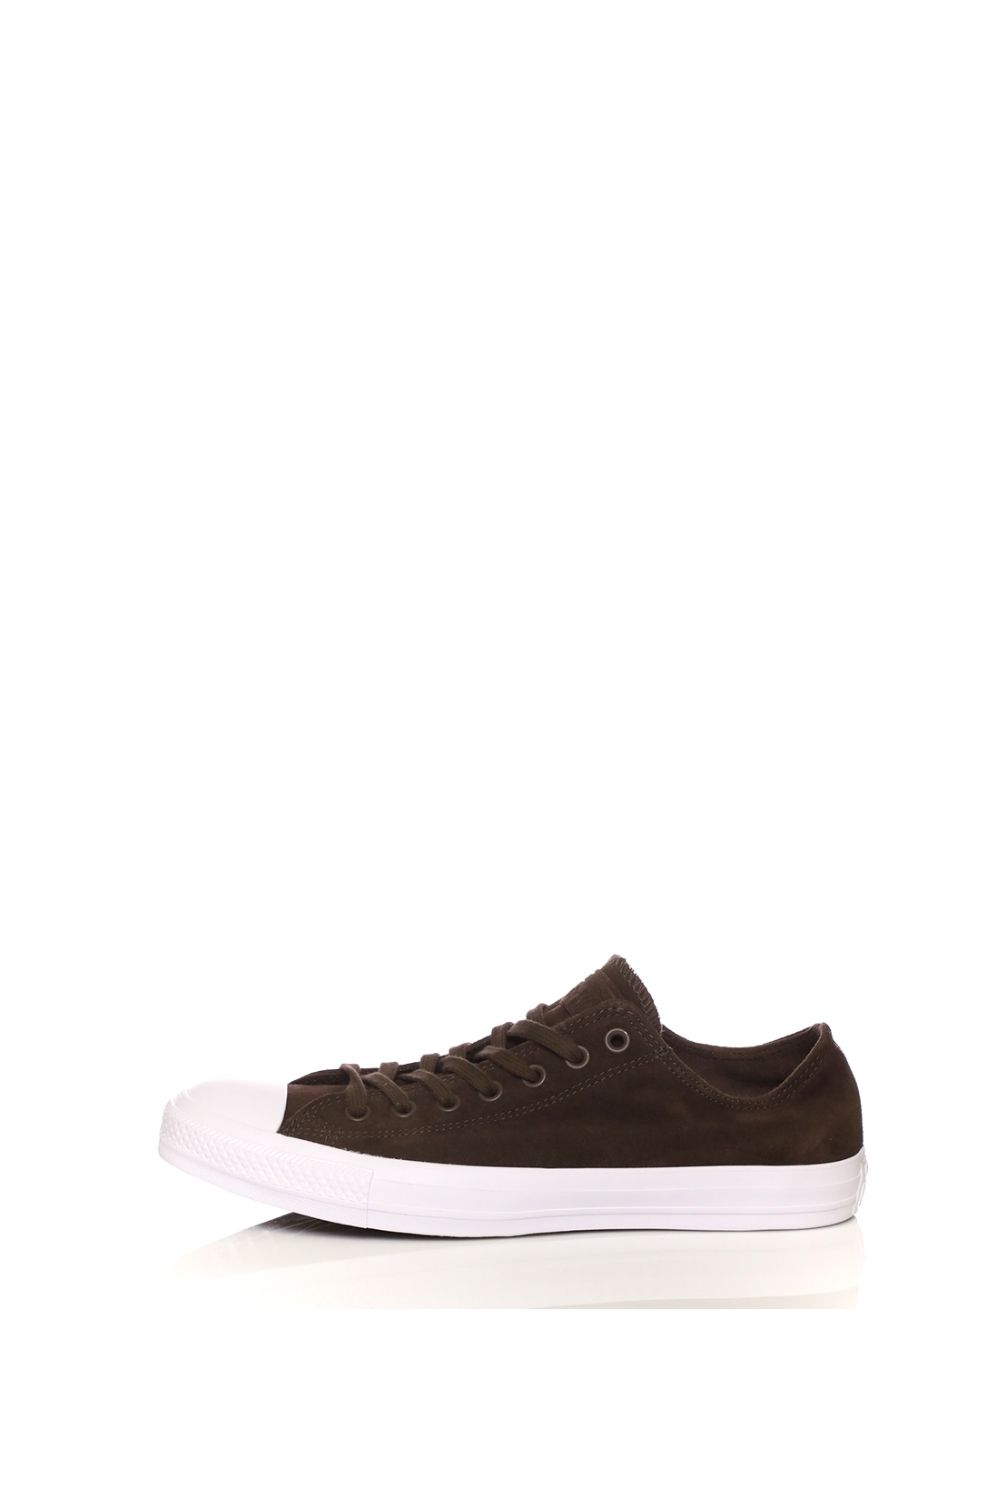 CONVERSE - Unisex sneakers CONVERSE Chuck Taylor All Star Ox καφέ